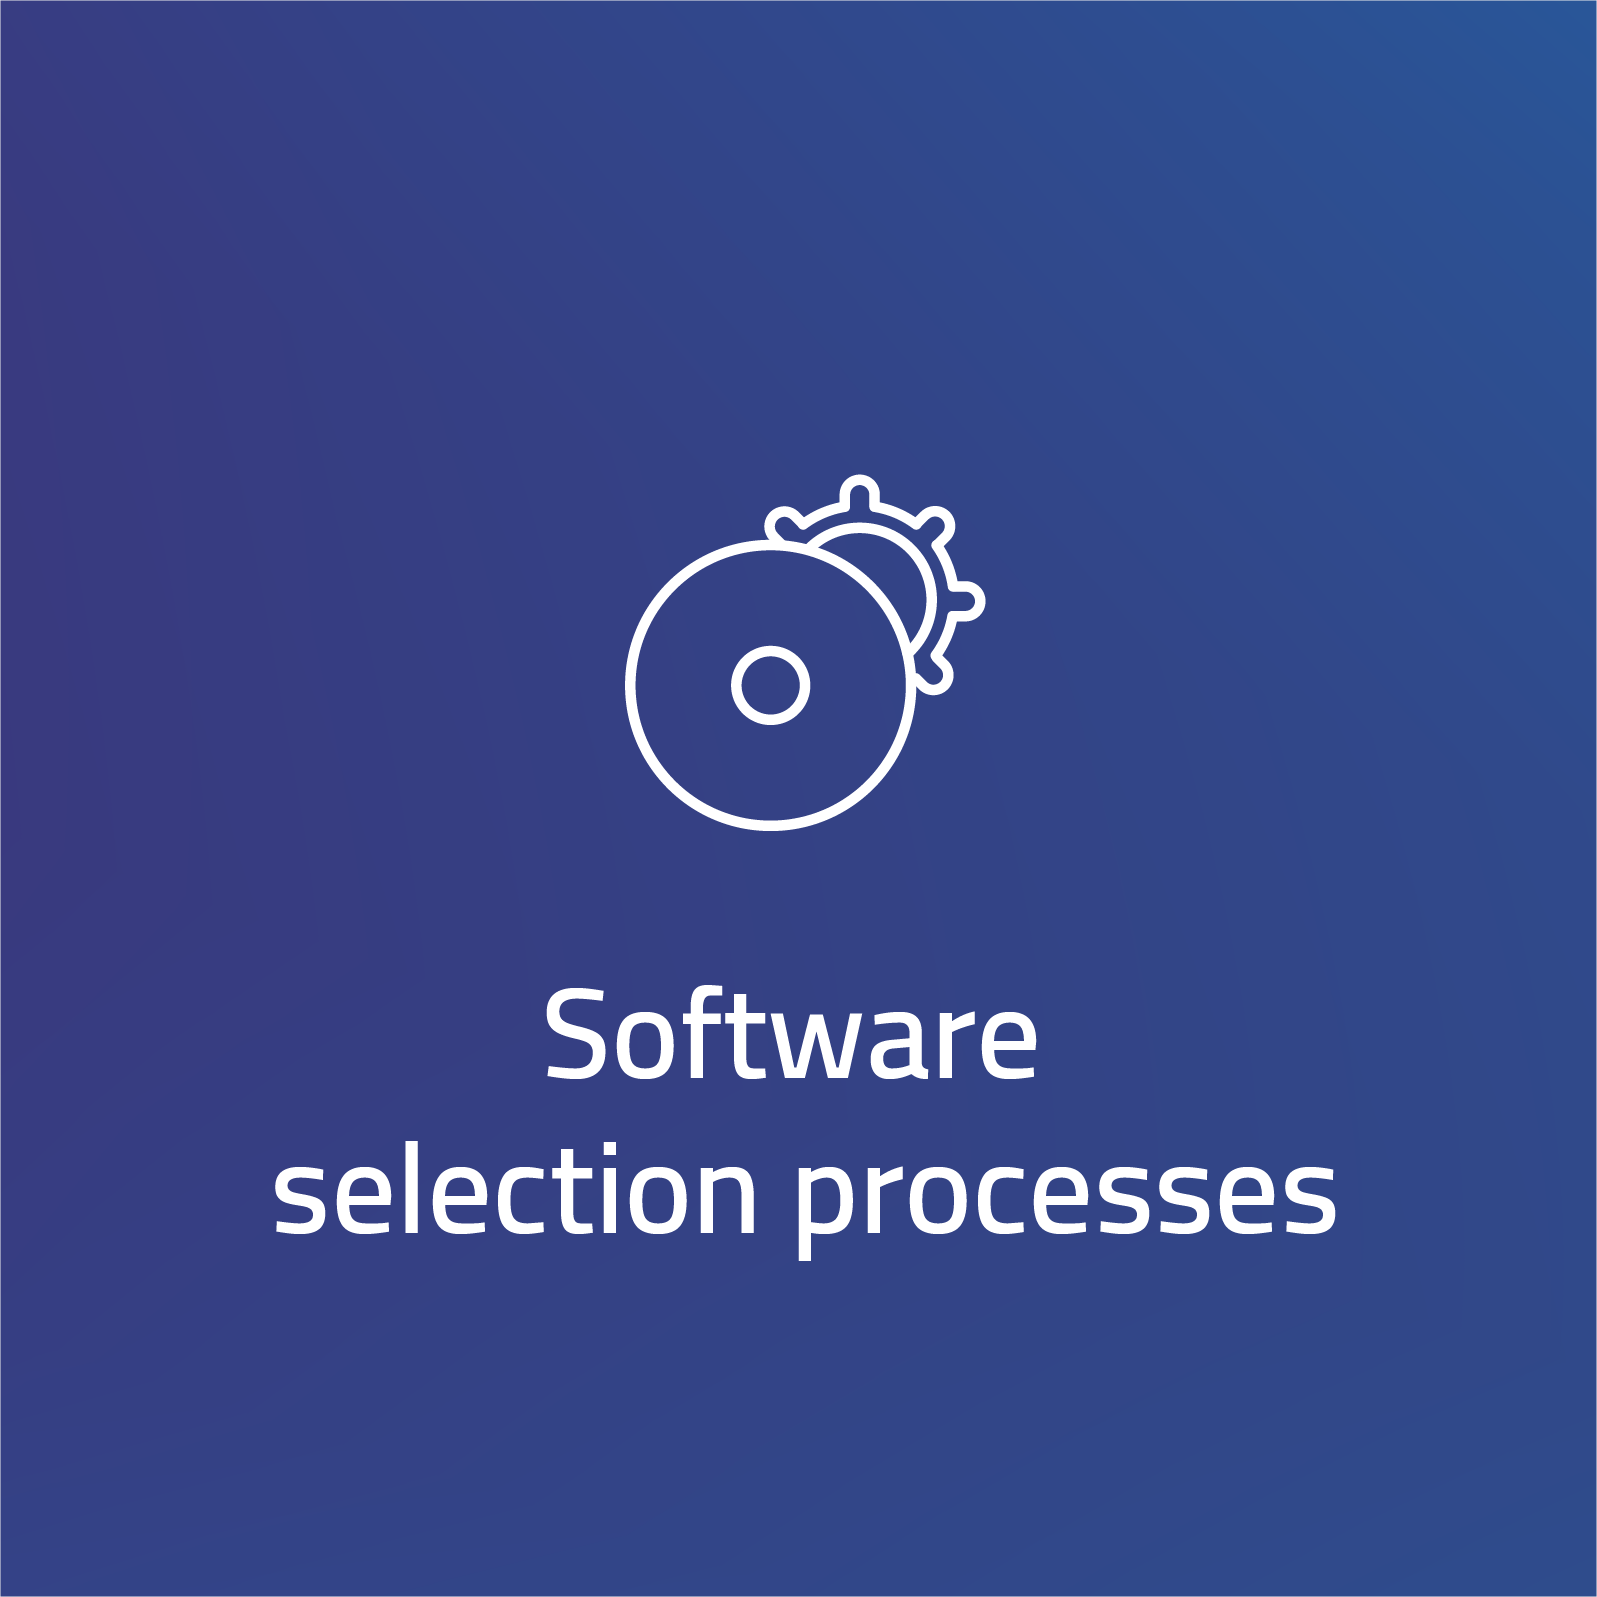 Software selection processes